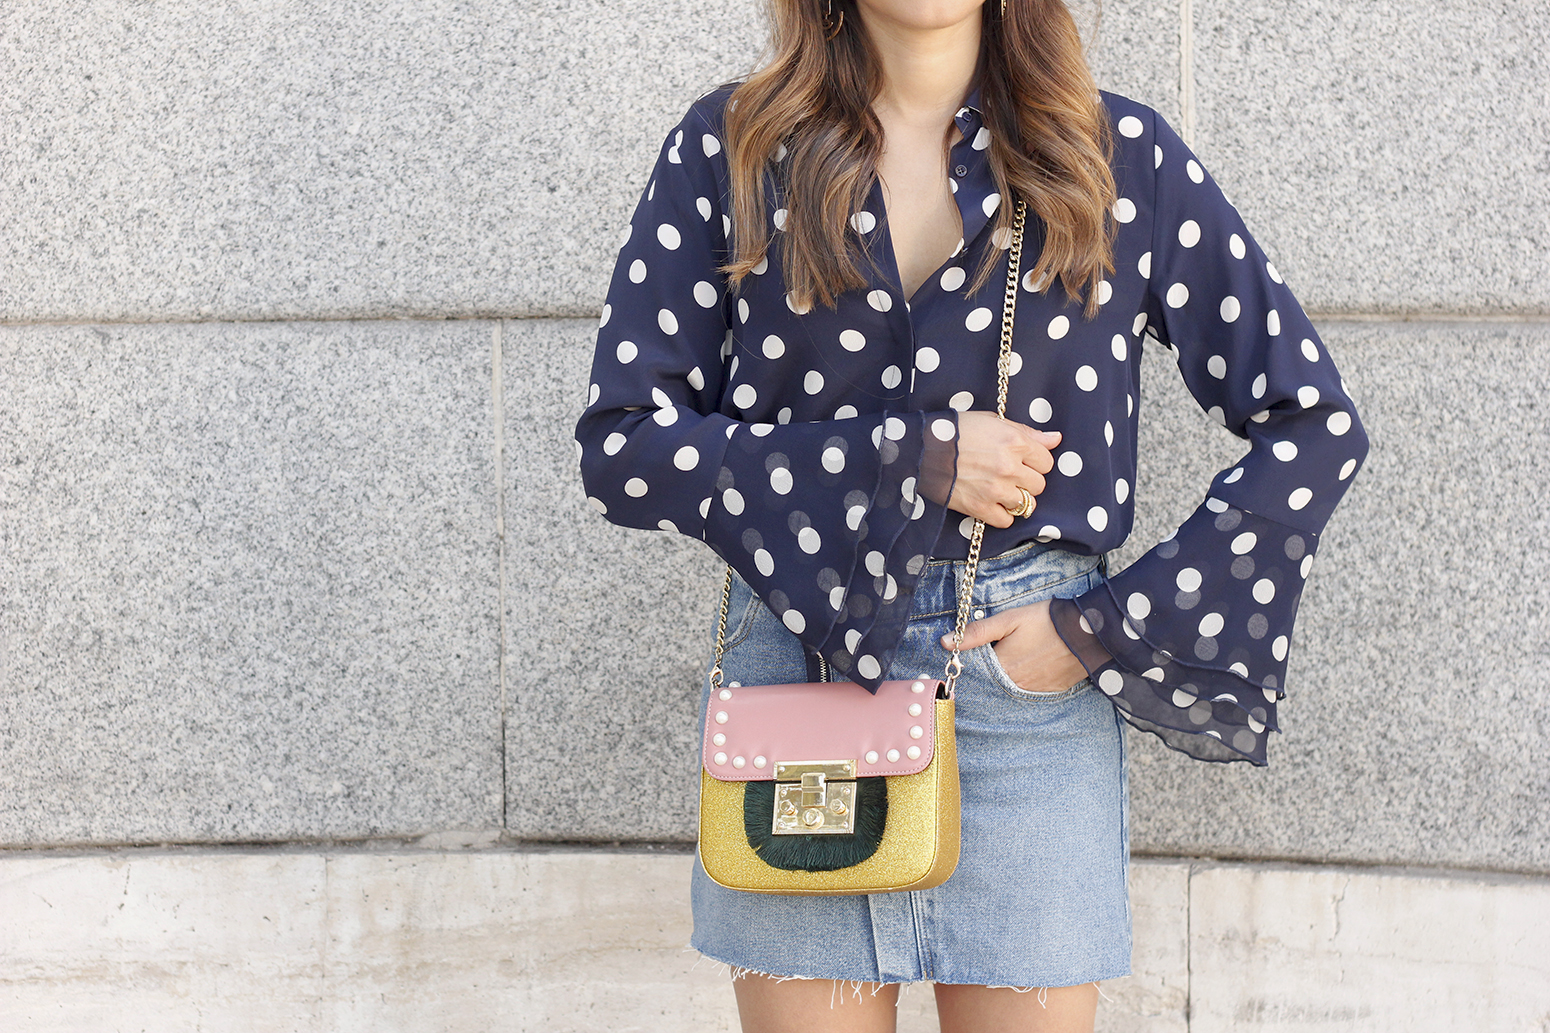 Polka dots shirt uterqüe bolso denim skirt girl outfit fashion15